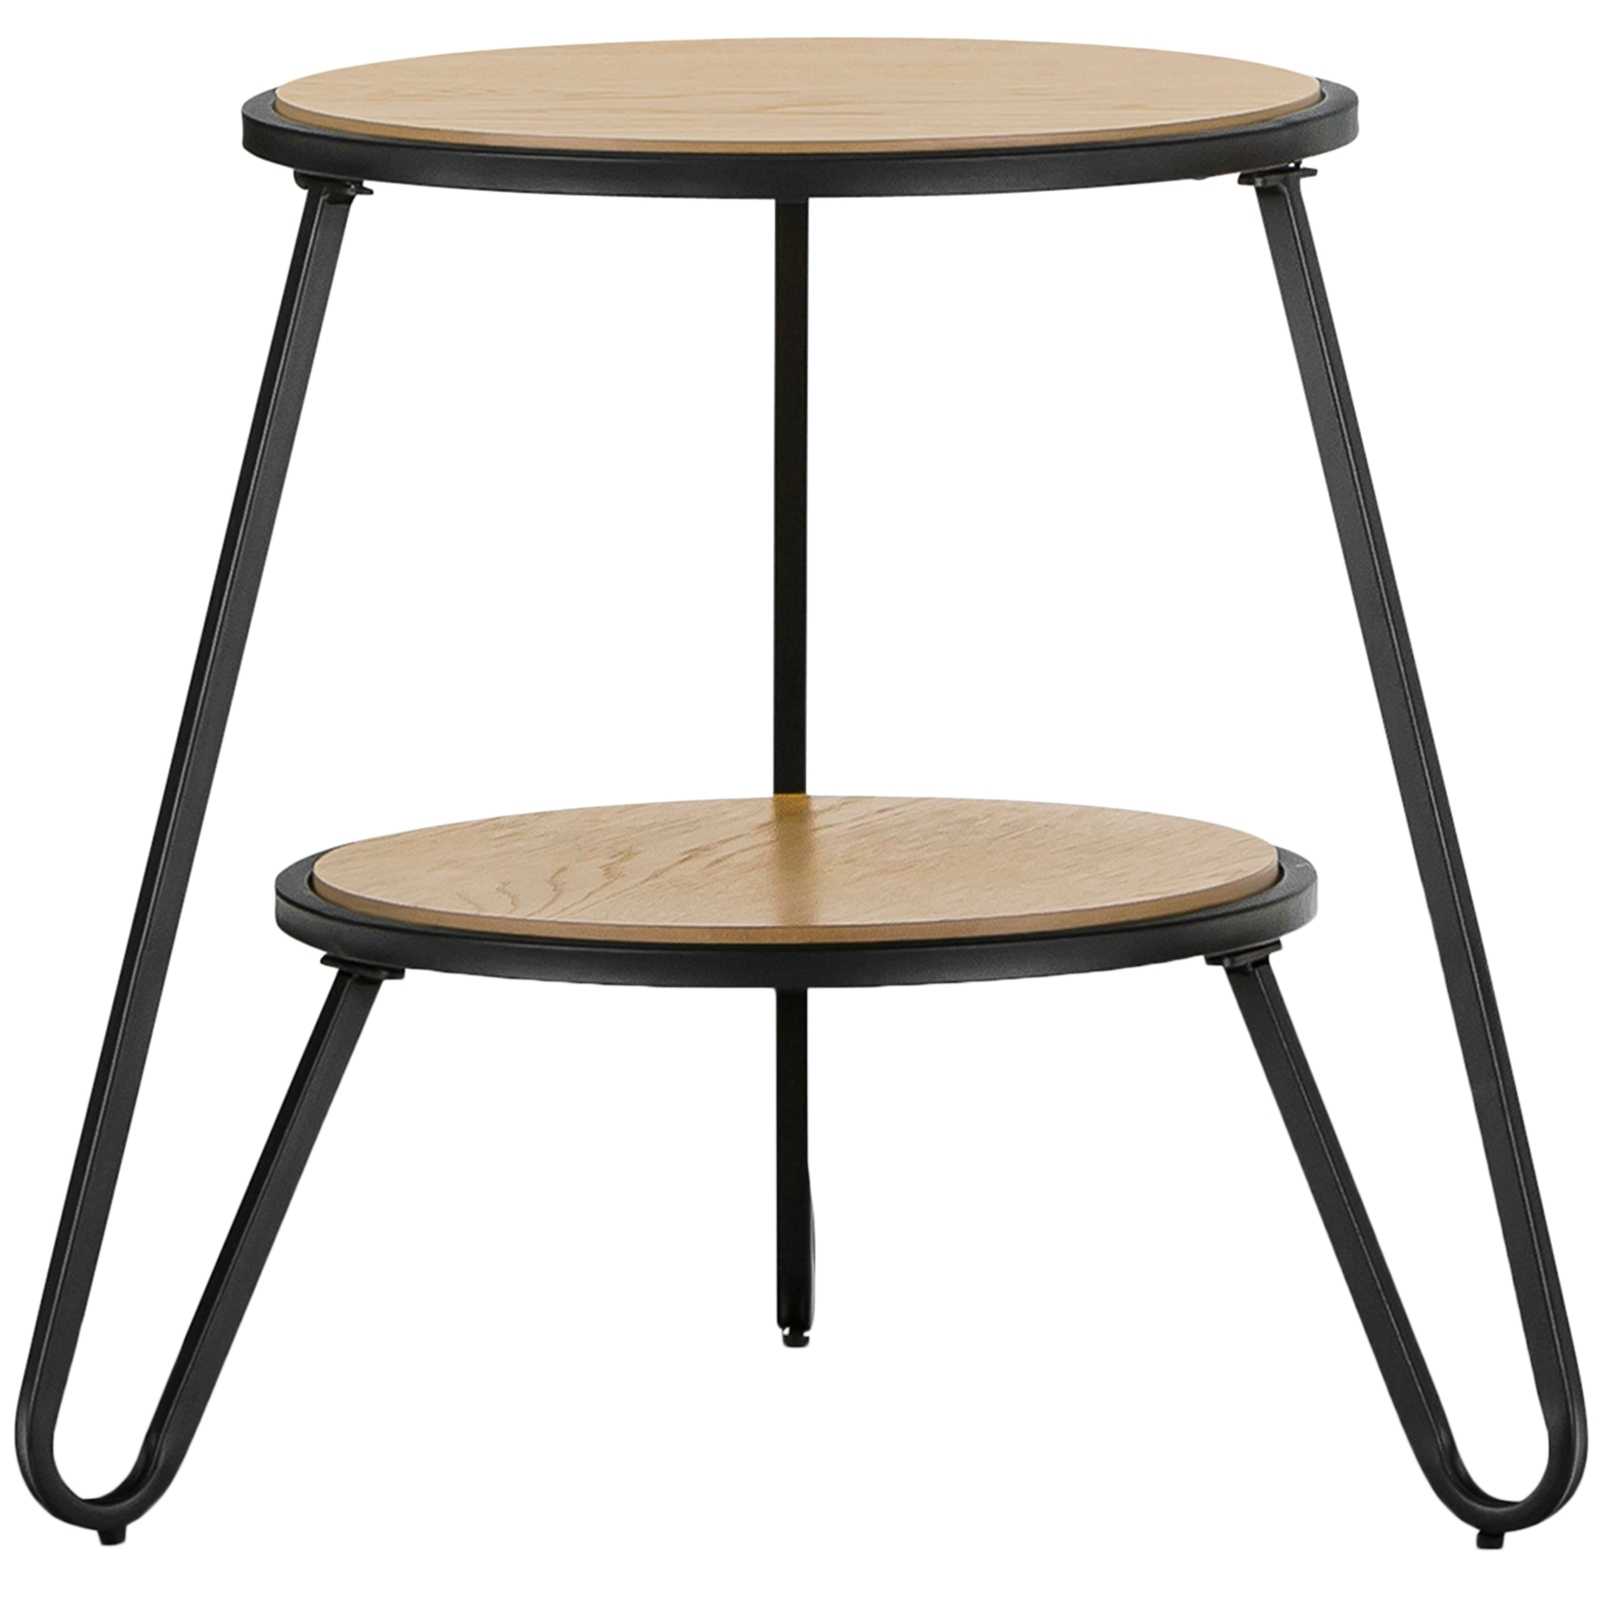 Black Macy Round Side Table | Temple & Webster With Recent Macie Round Dining Tables (Image 3 of 20)